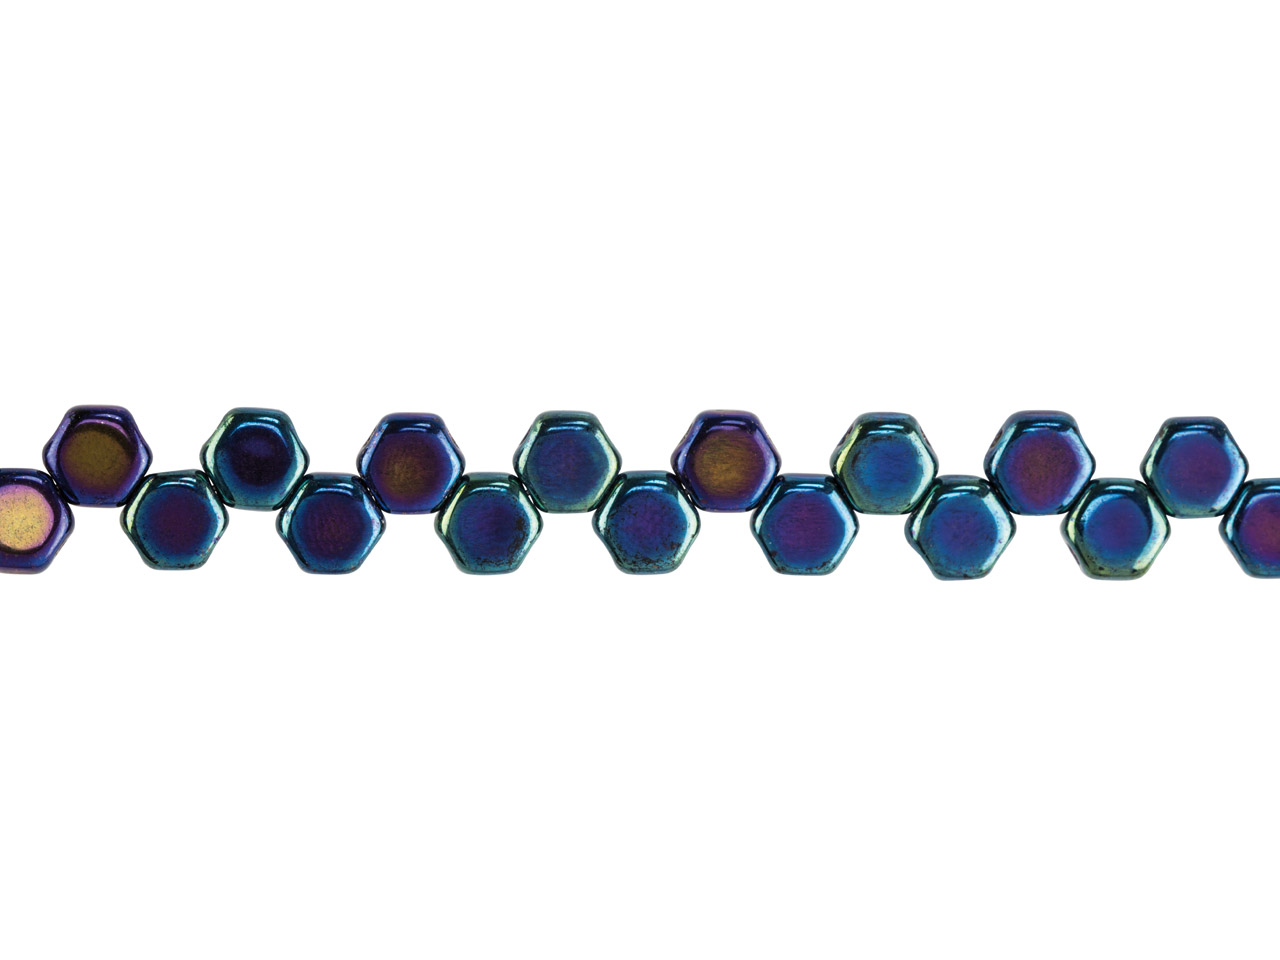 Honeycomb 6mm Czech Beads, Jet Blue Iris, Strand Of 30 Beads